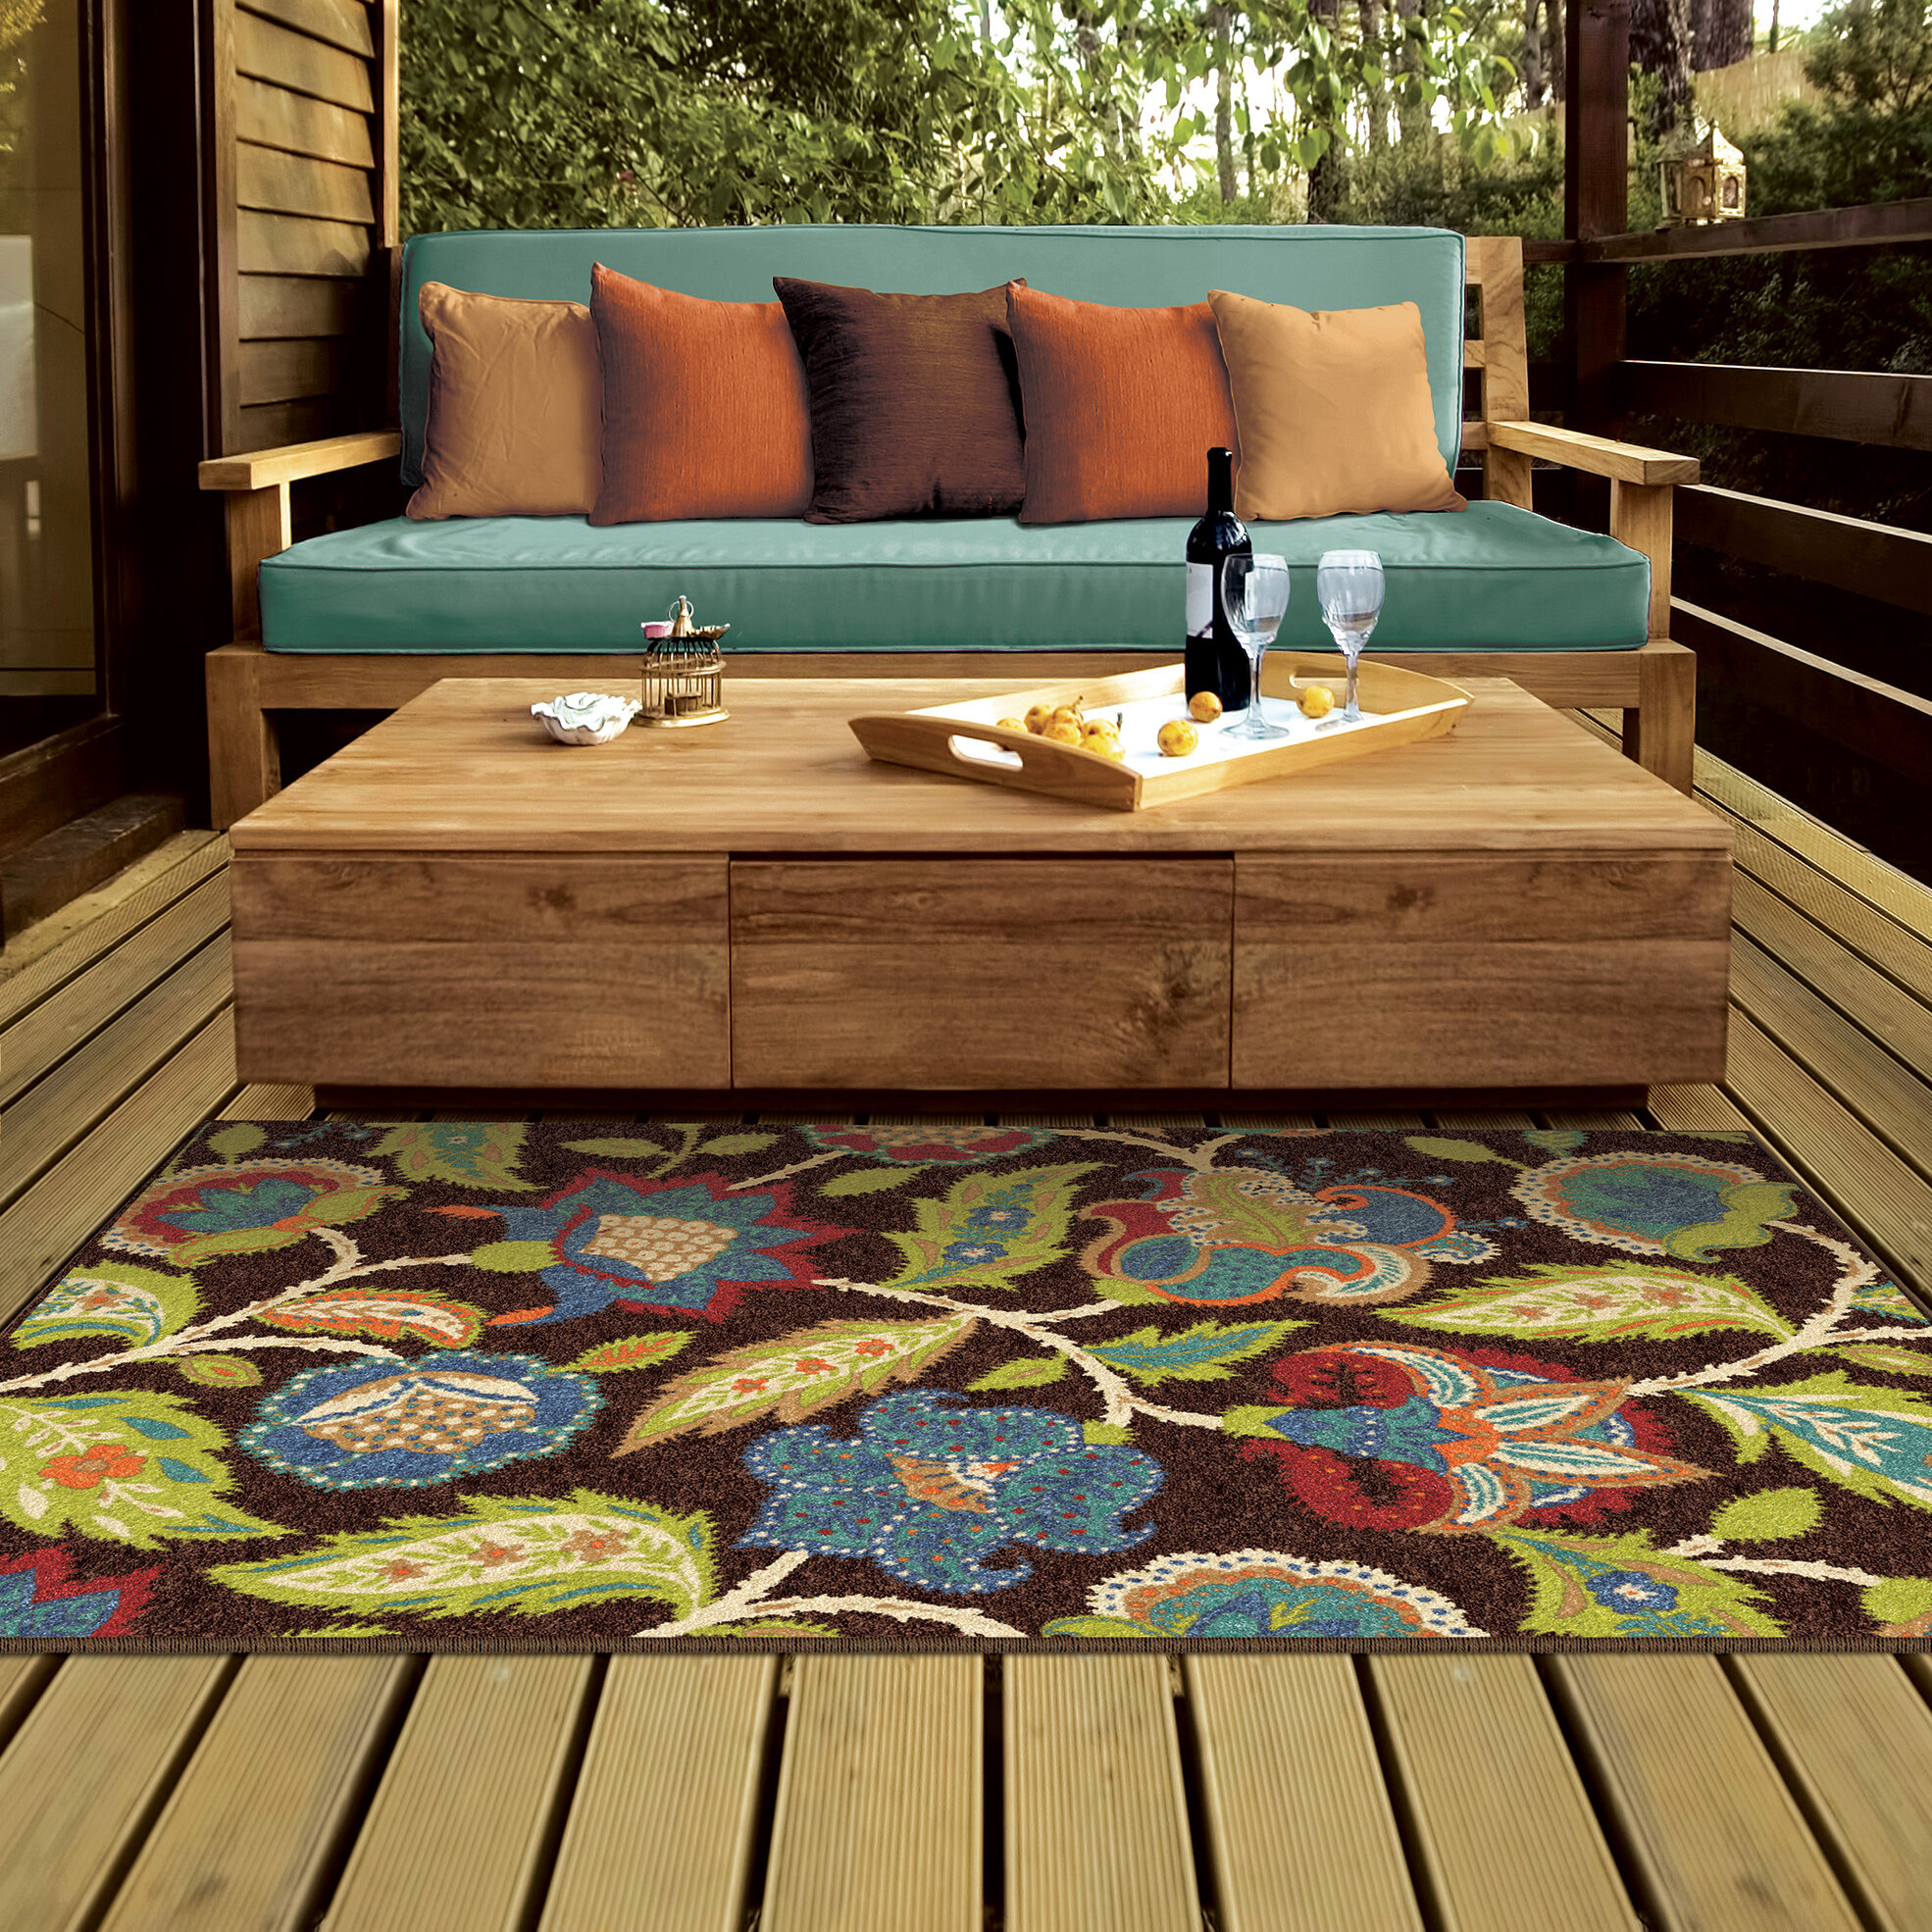 outdoor porch flooring weather rug all red beige design lowes modern rain with rugs and area pattern indoor decorations in enchanting withstand wood round decor brown